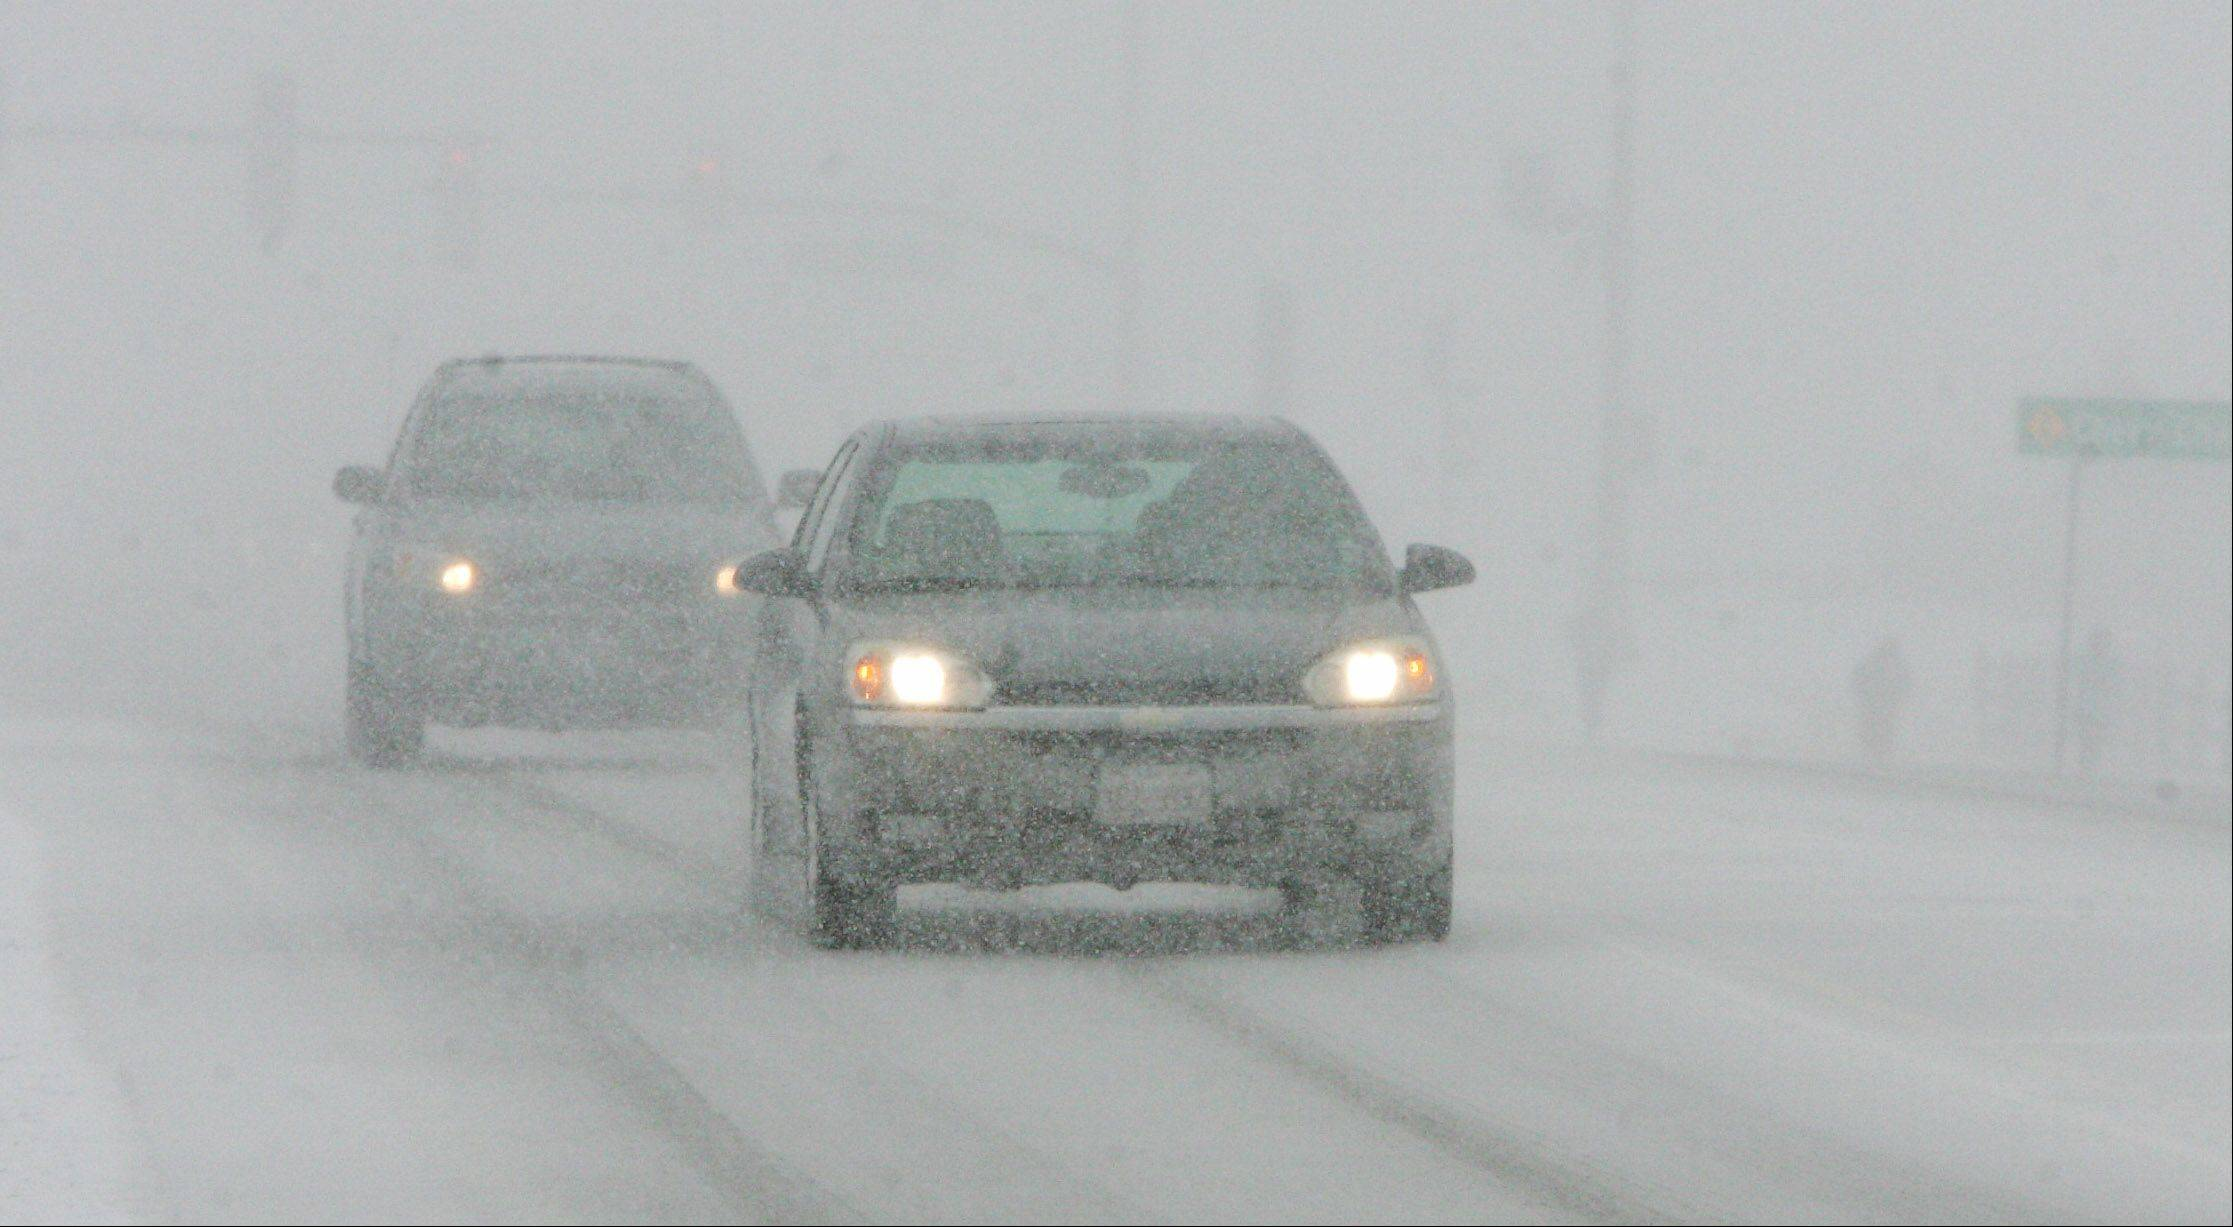 Cars try to navigate along Hawley Street in Mundelein during the snowstorm that hit Lake County on Tuesday. The blizzard was expected to drop up to six inches of snow in the area.